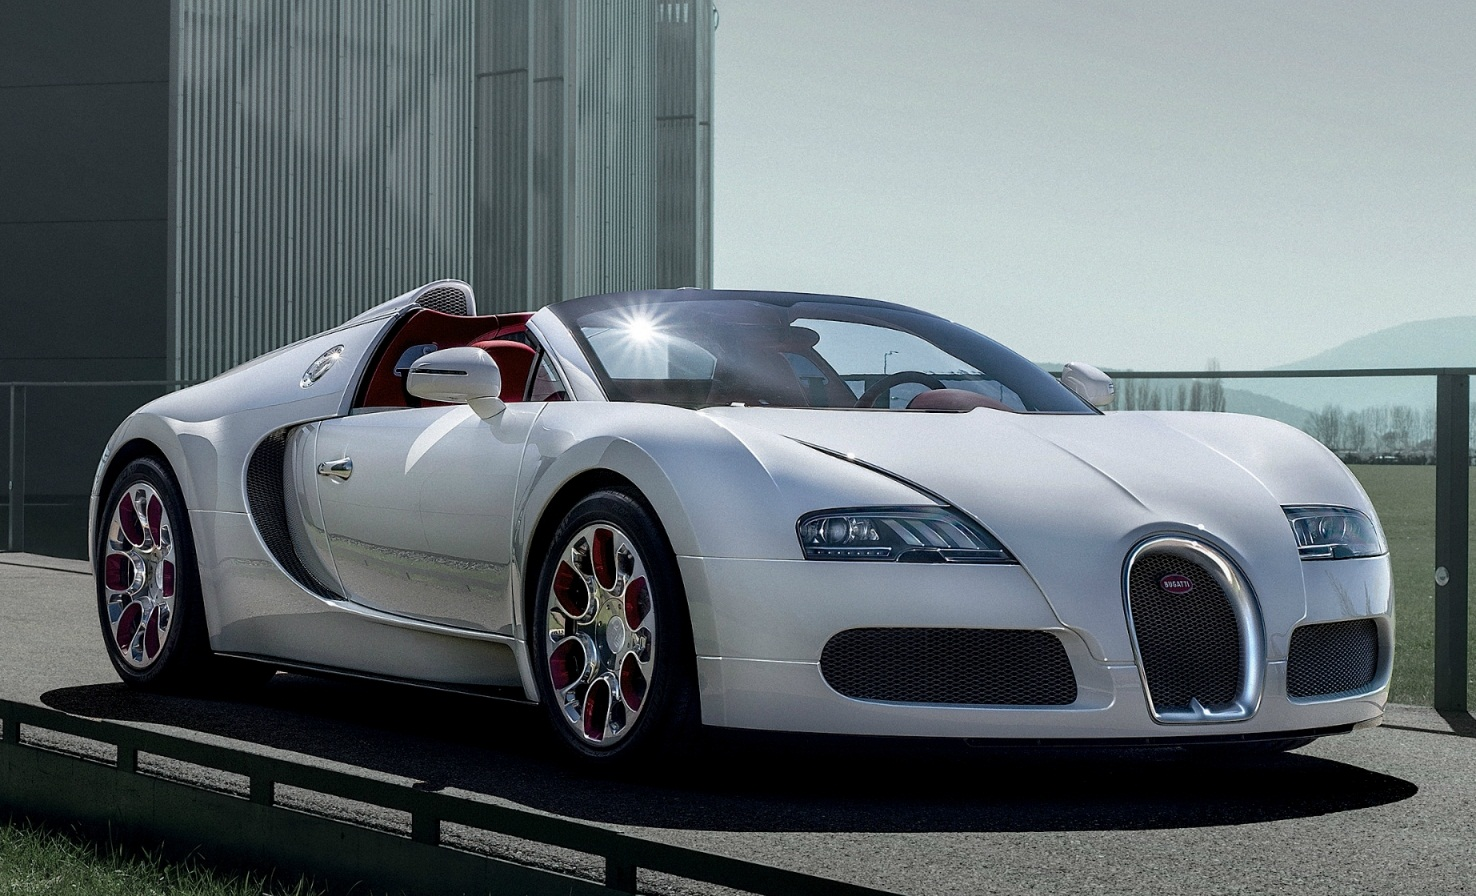 sport car garage bugatti veyron grand sport wei long 2012. Black Bedroom Furniture Sets. Home Design Ideas